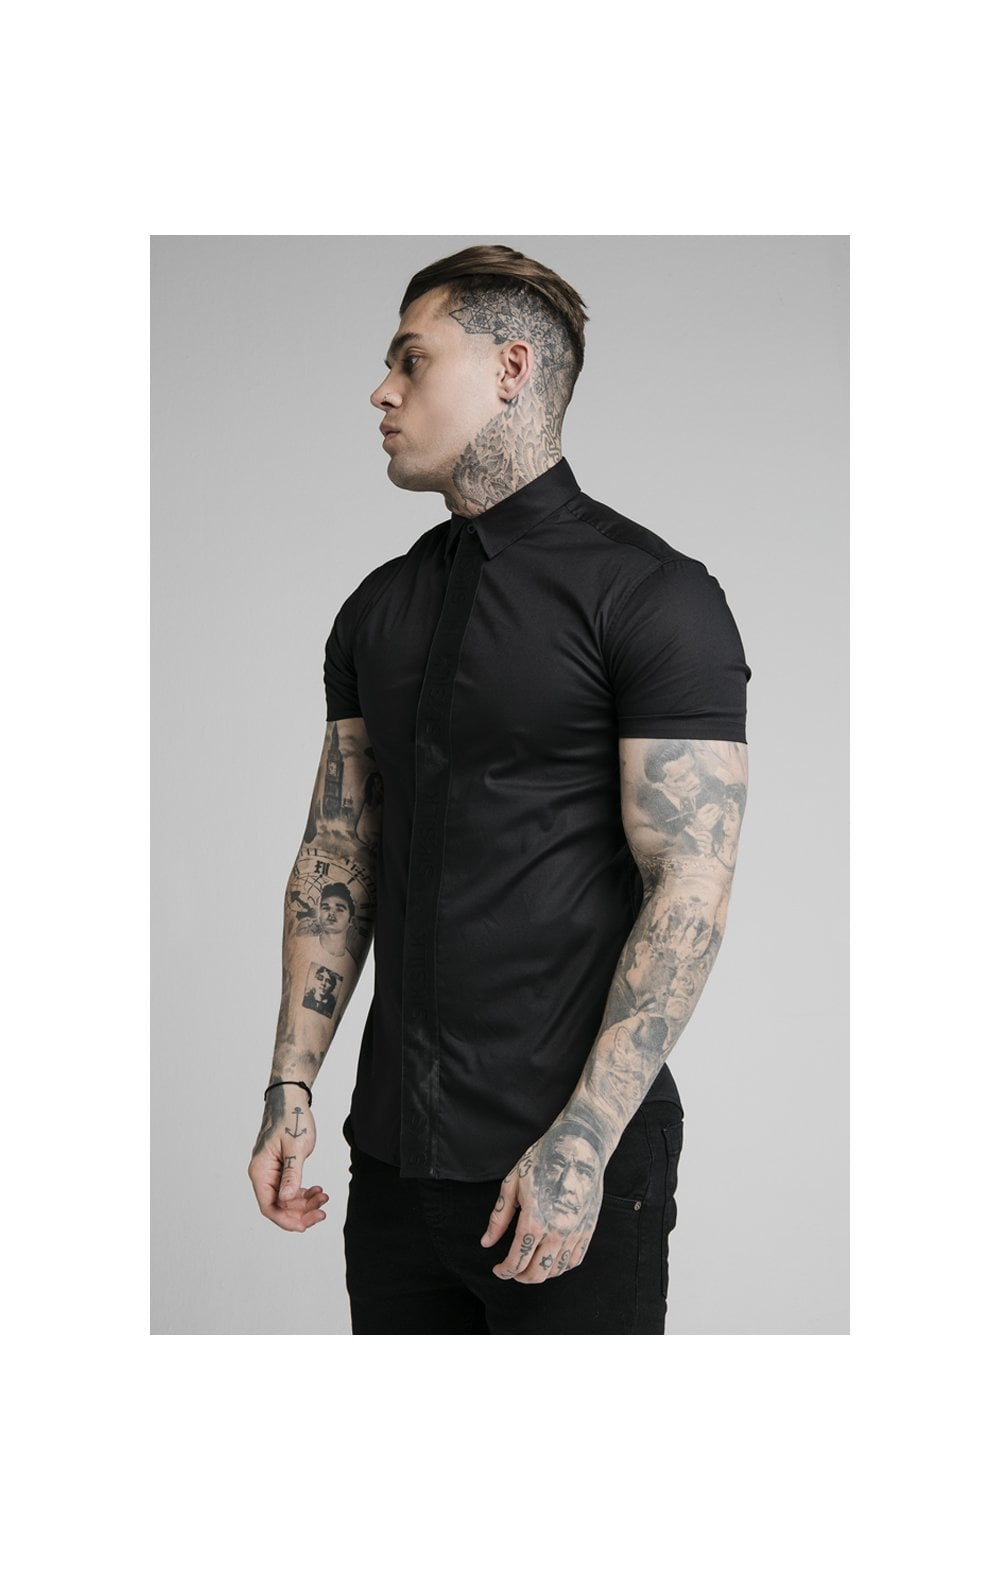 SikSilk S/S Woven Tape Placket Shirt - Black (1)